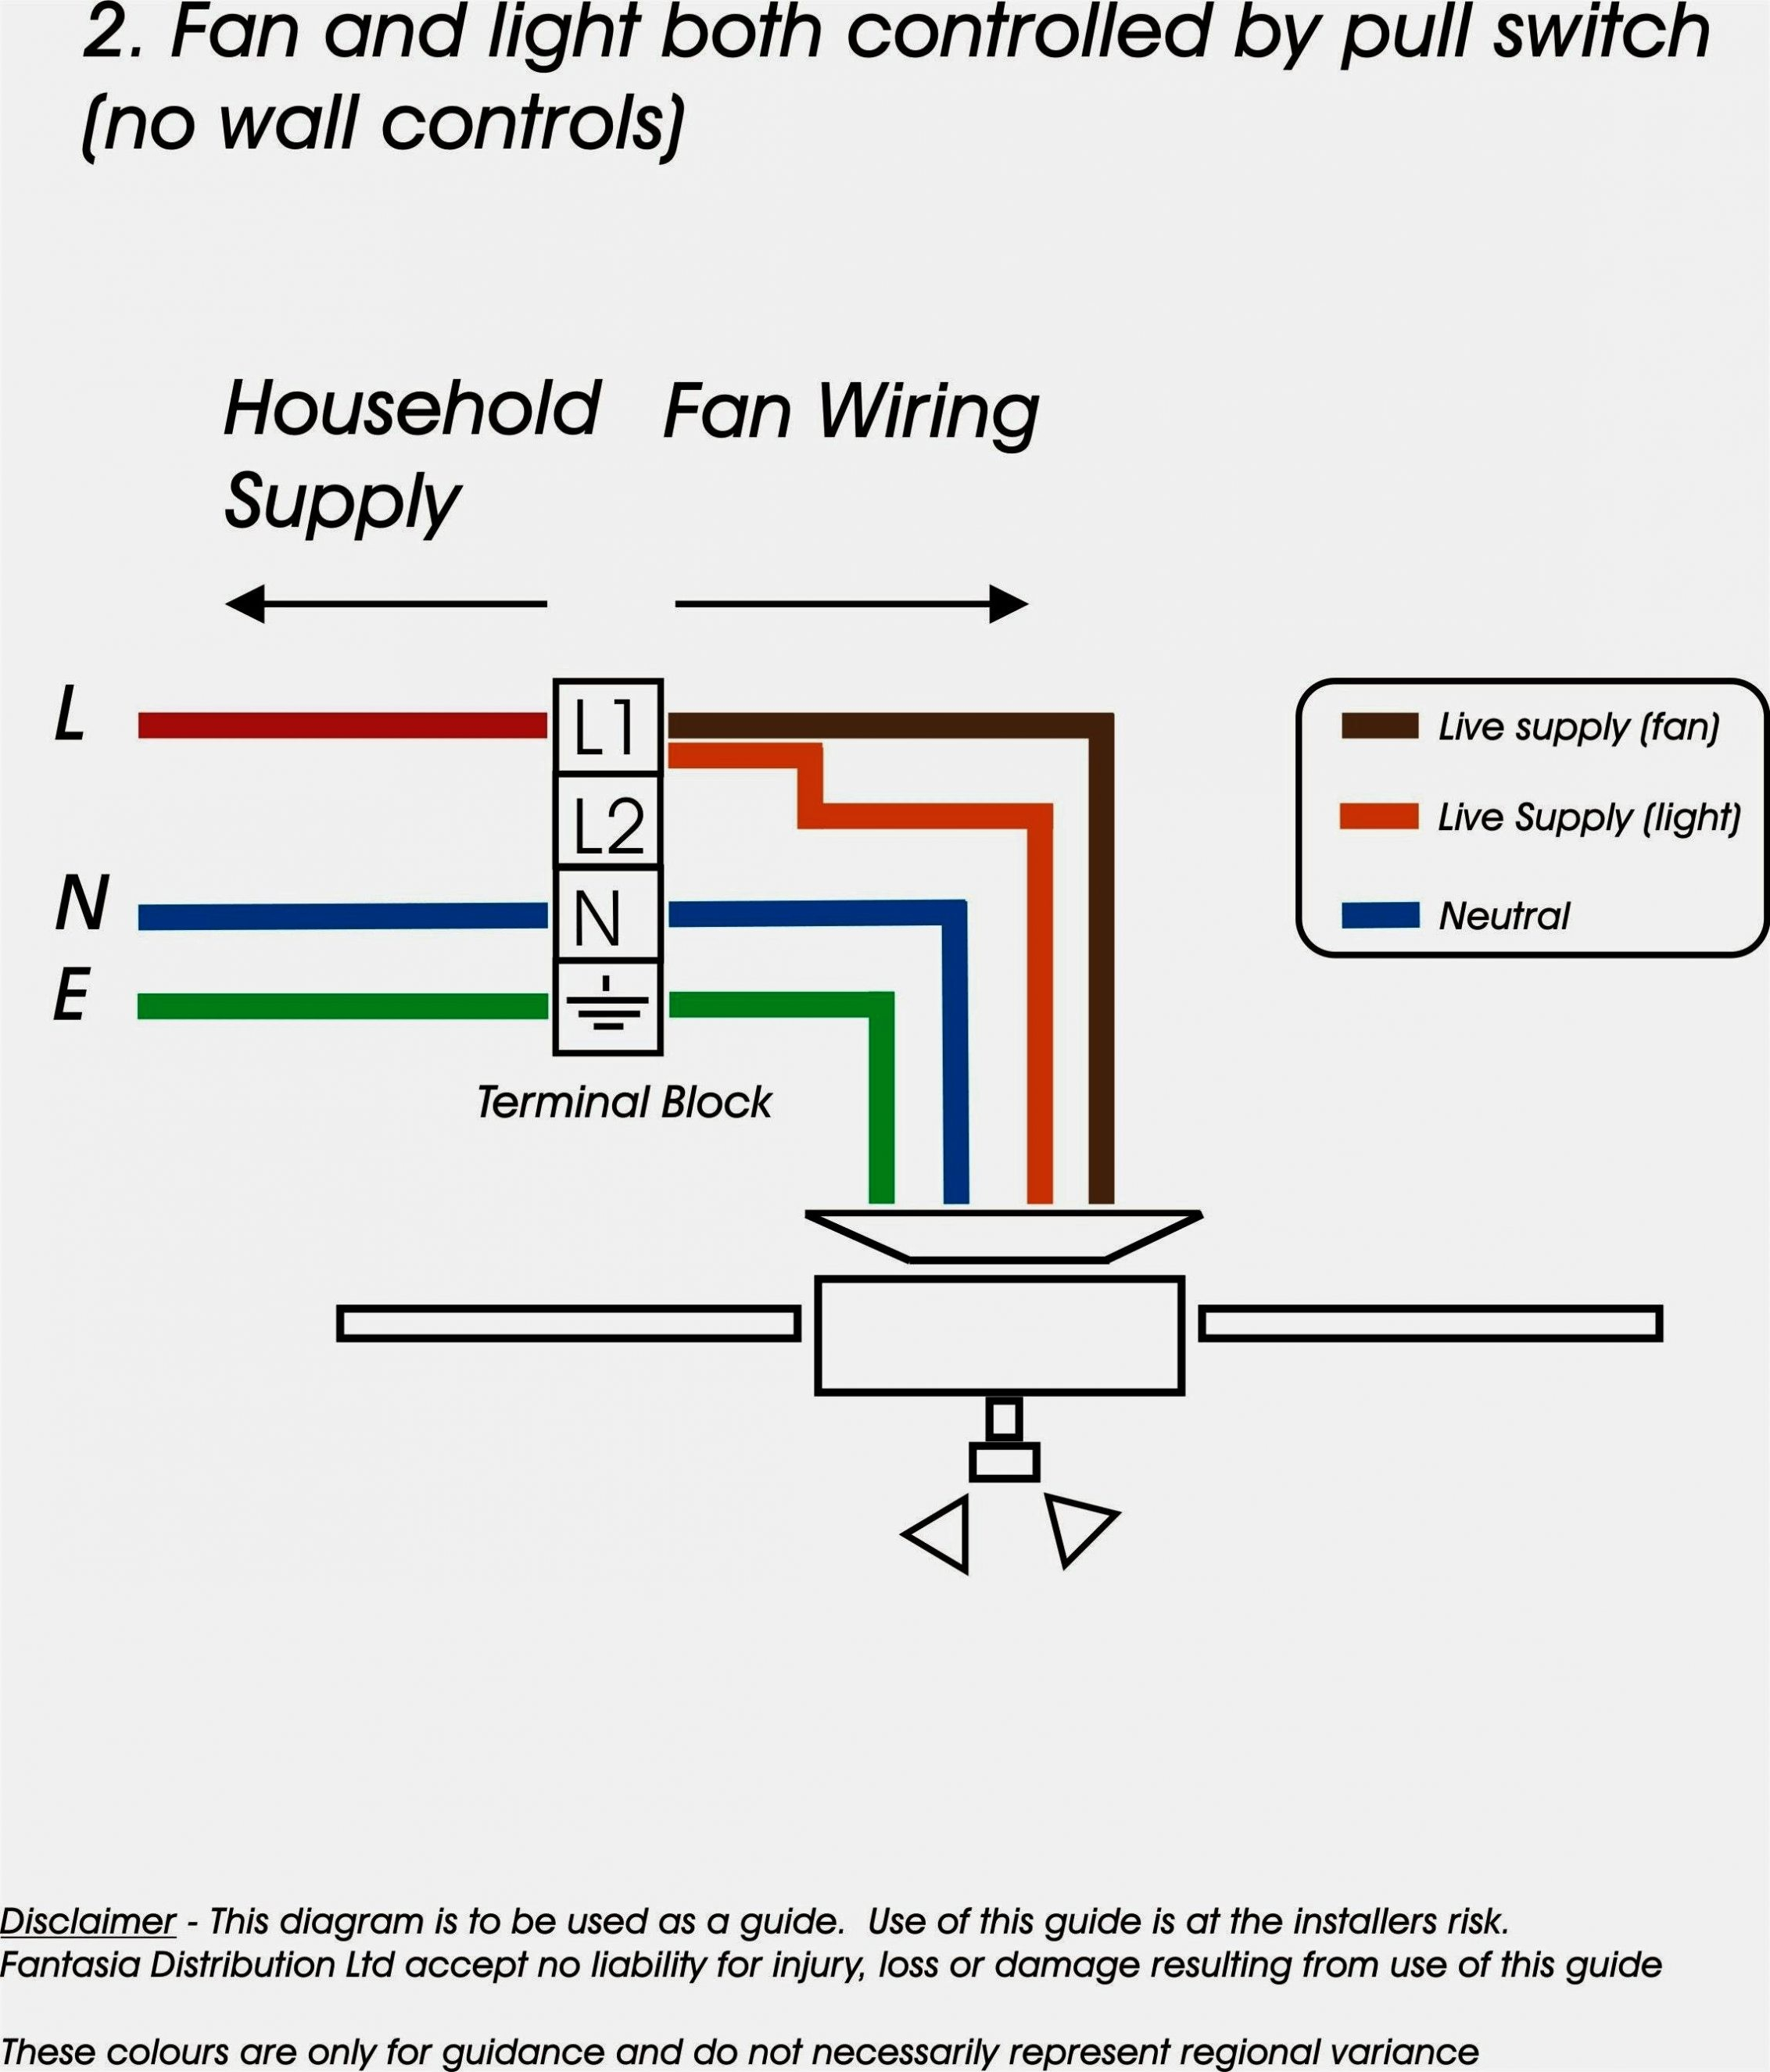 tennant 5680 wiring diagram Collection-Way Fan Switch Wiring Diagram Download Electrical Wiring Diagram Tennant 5680 wiring diagram 16-j